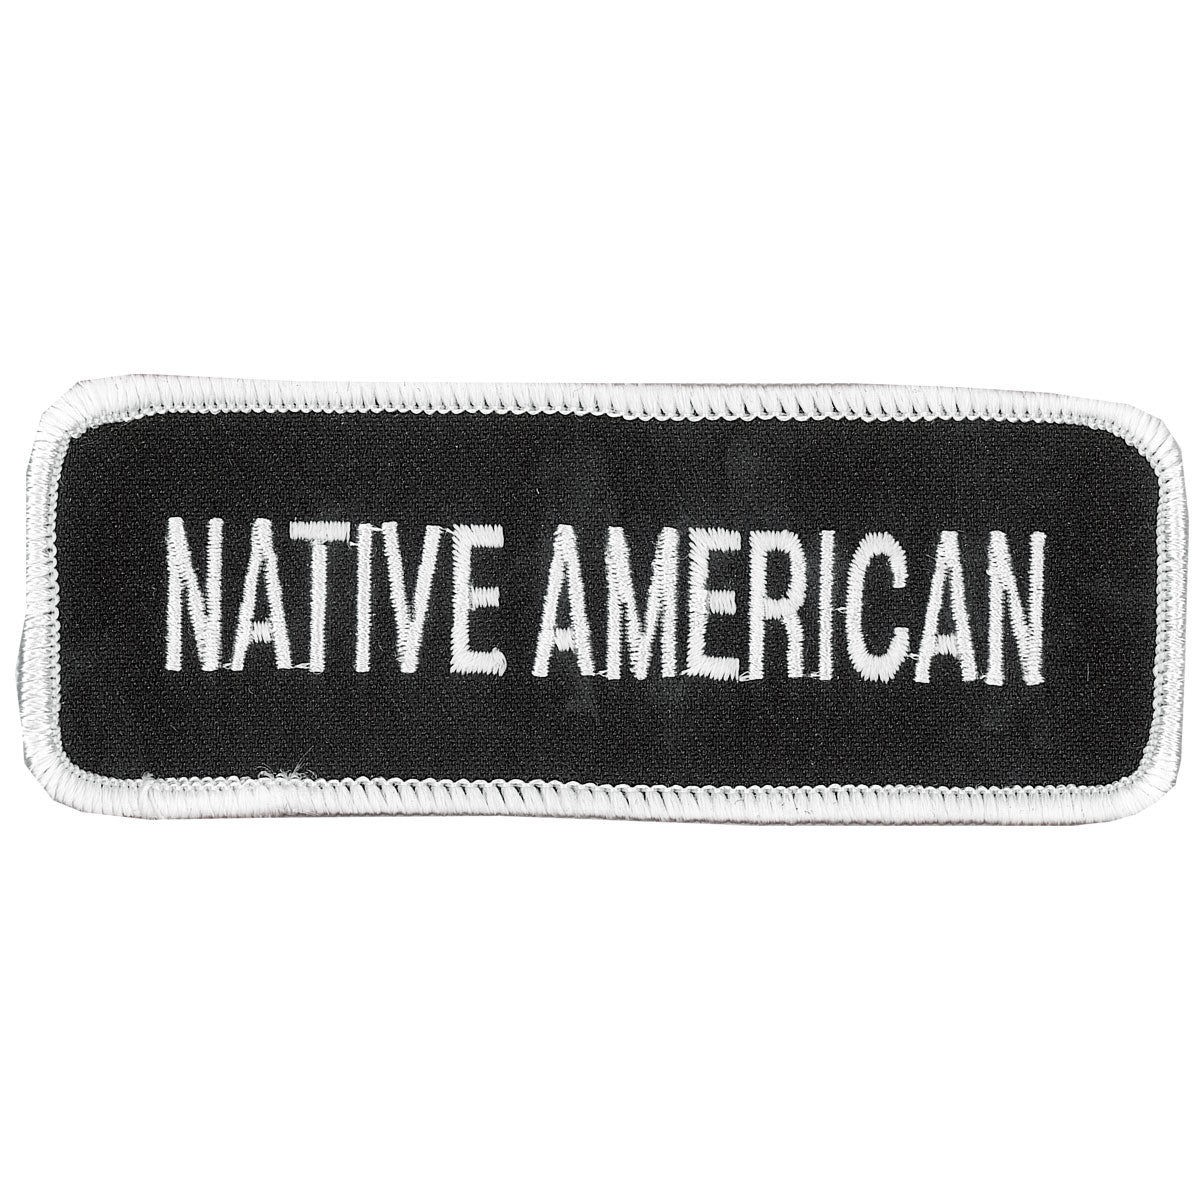 "Hot Leathers Native American 4"" x 2"" Patch"